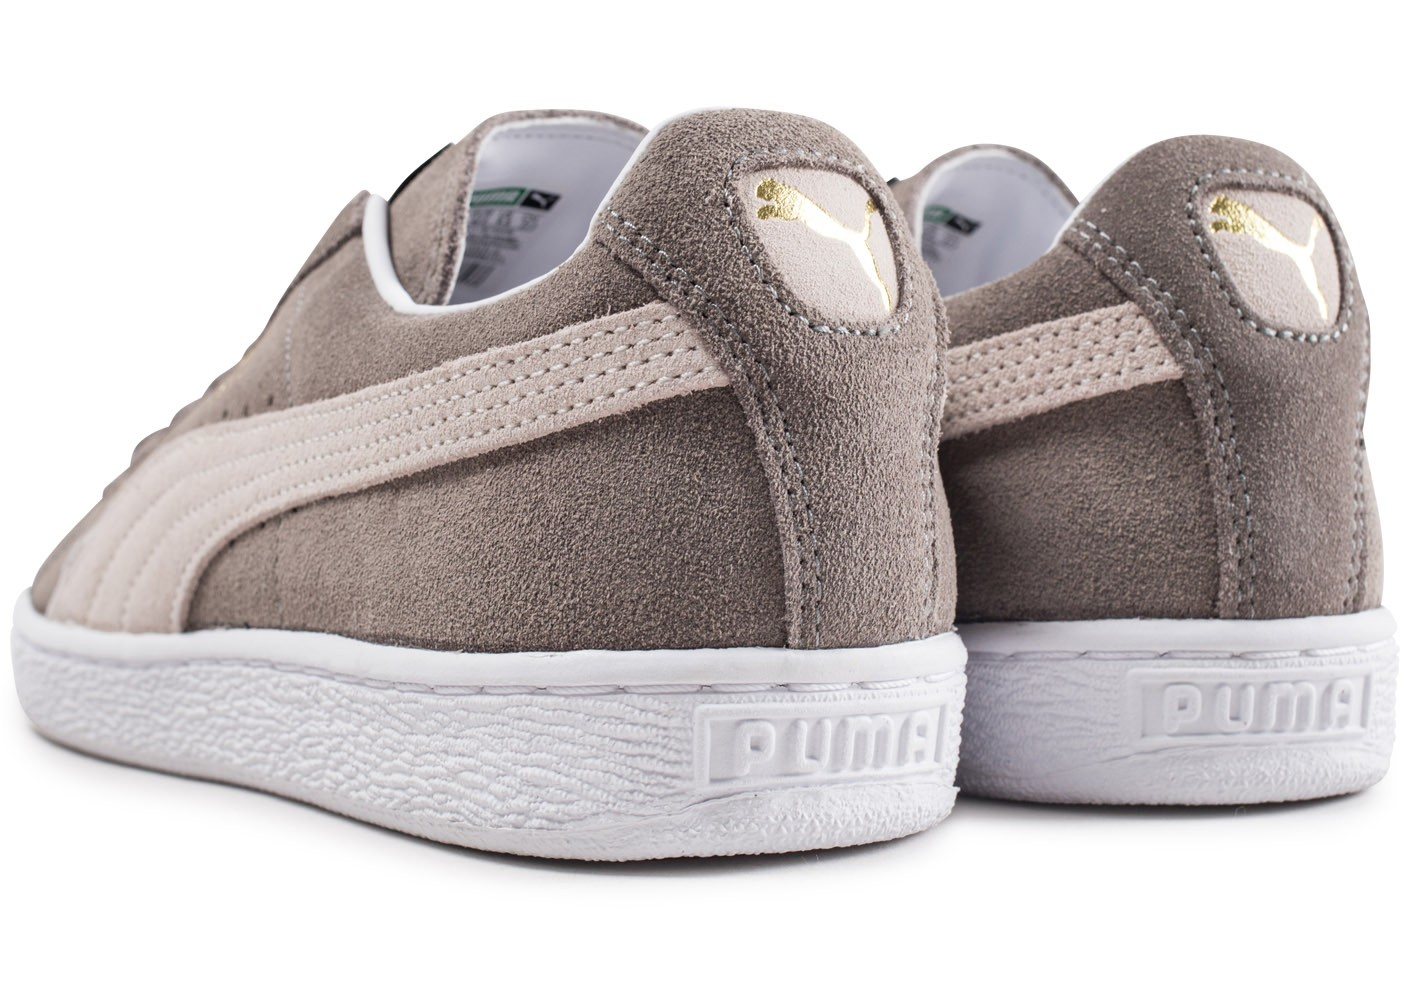 Puma Chaussures Chausport Suede Homme Grise Classic Baskets vmyn0w8ON